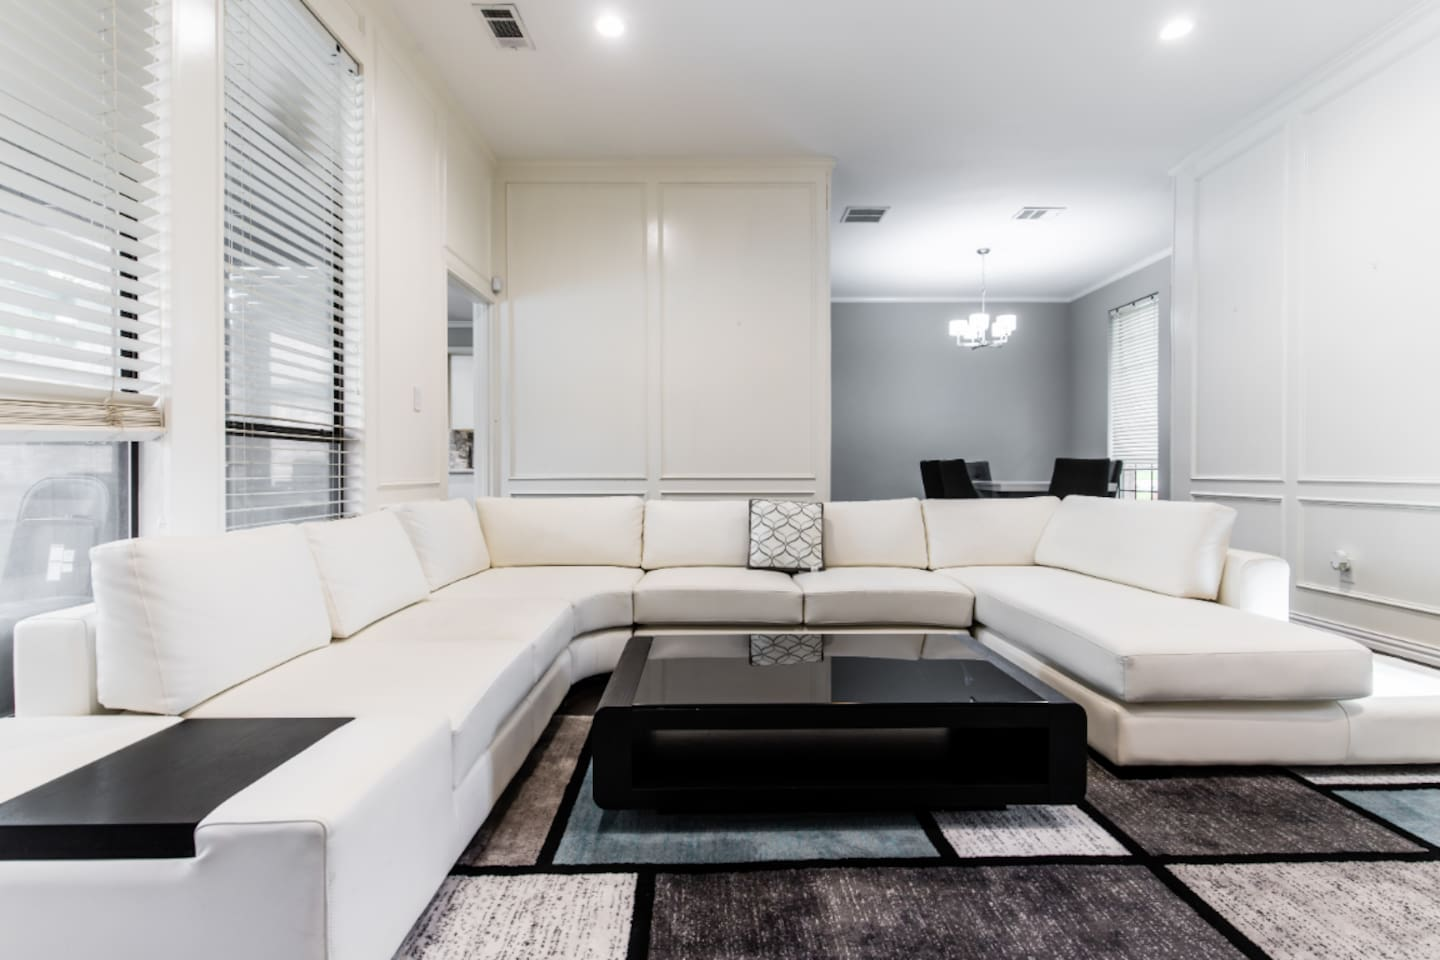 large open living room with with a small bar wine fridge and a large 80 inch smart tv and sound bar